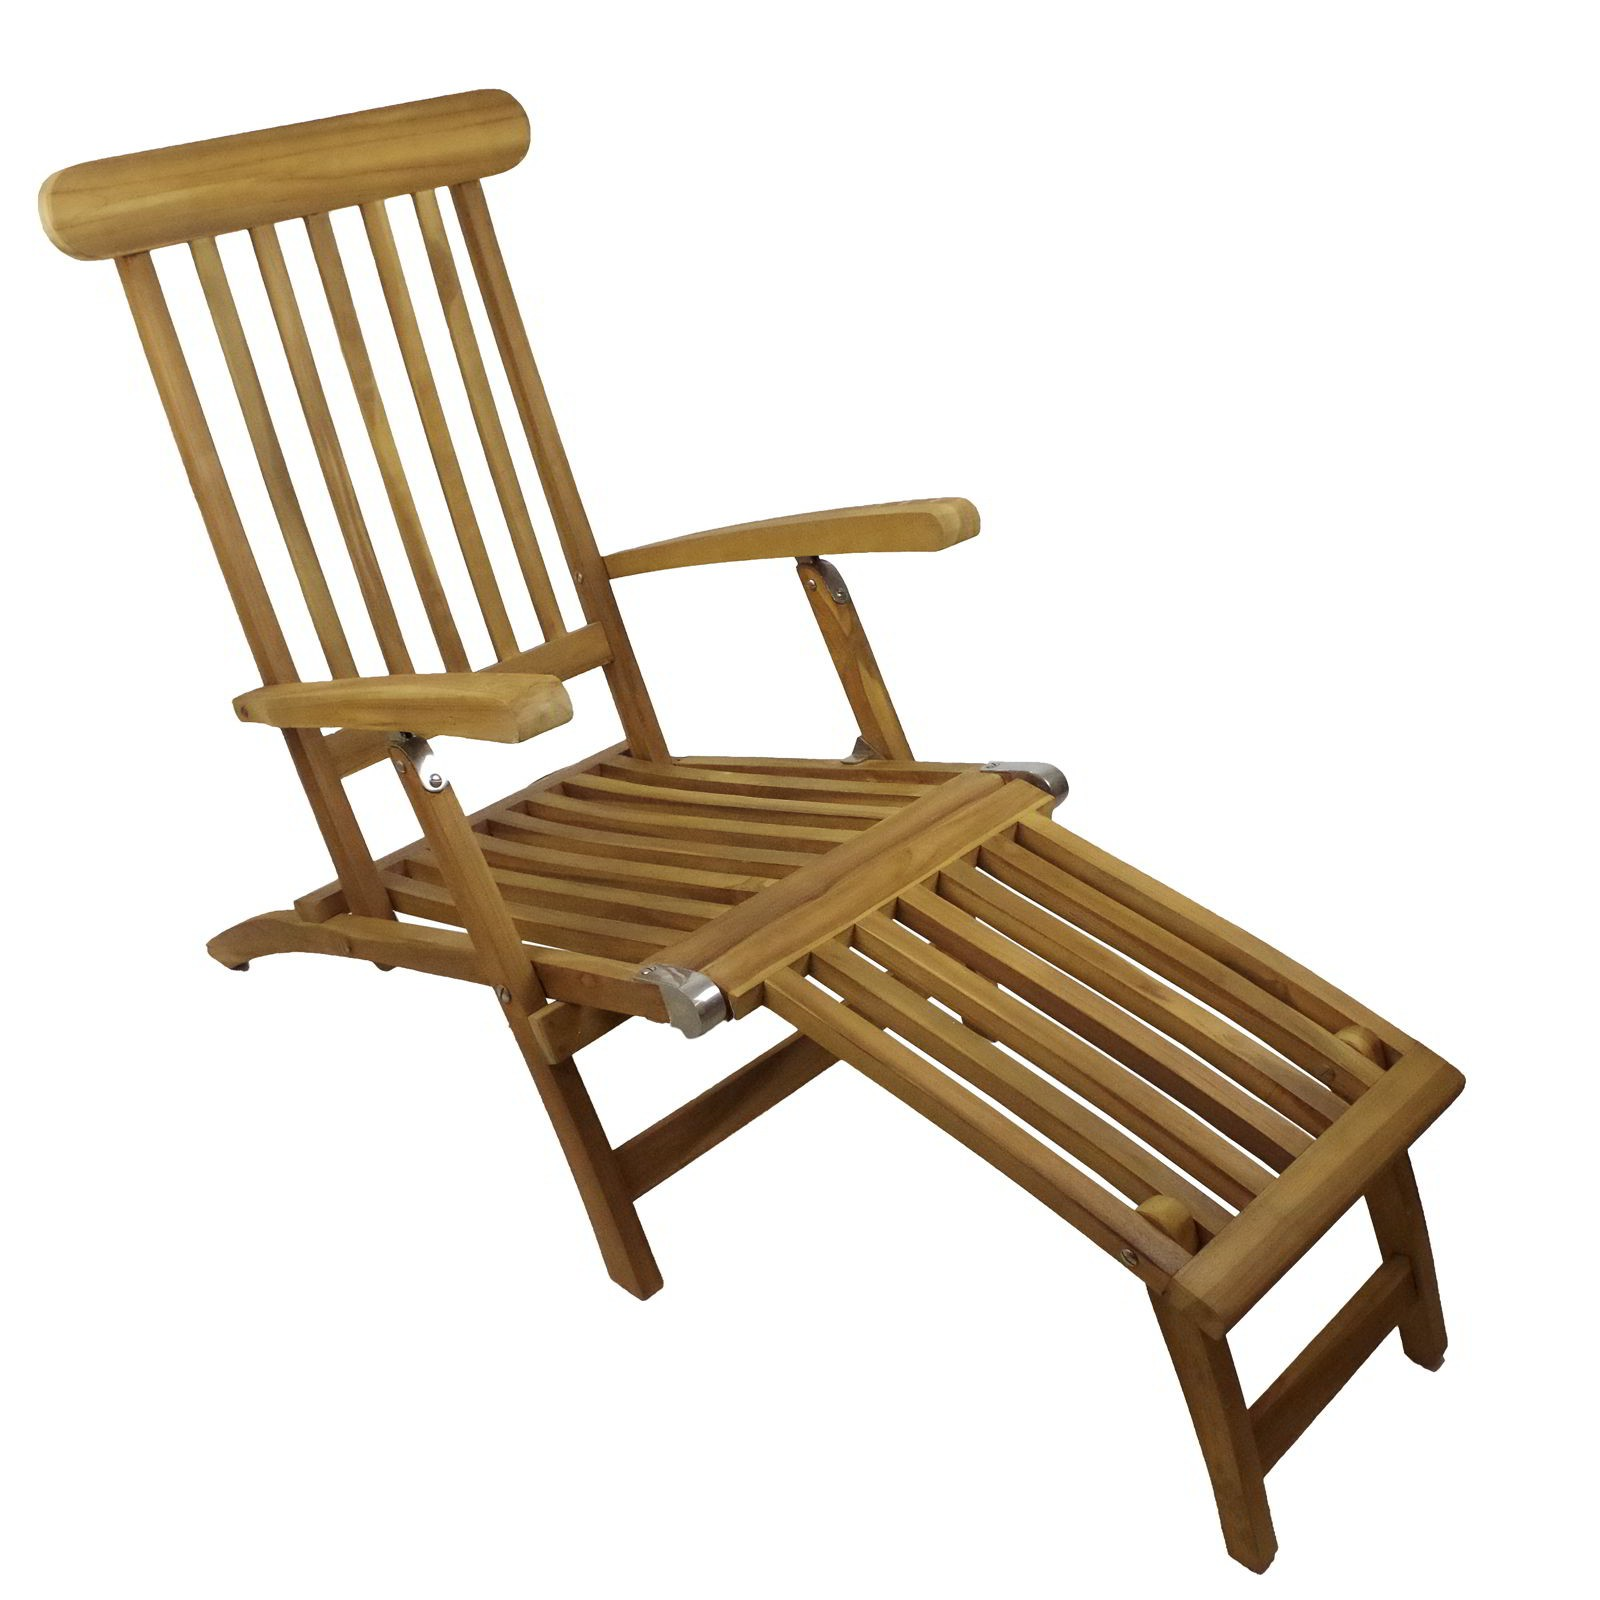 gartenstuhl deckchair teak 150x60x93cm edelstahl liegestuhl sonnenliege liege. Black Bedroom Furniture Sets. Home Design Ideas